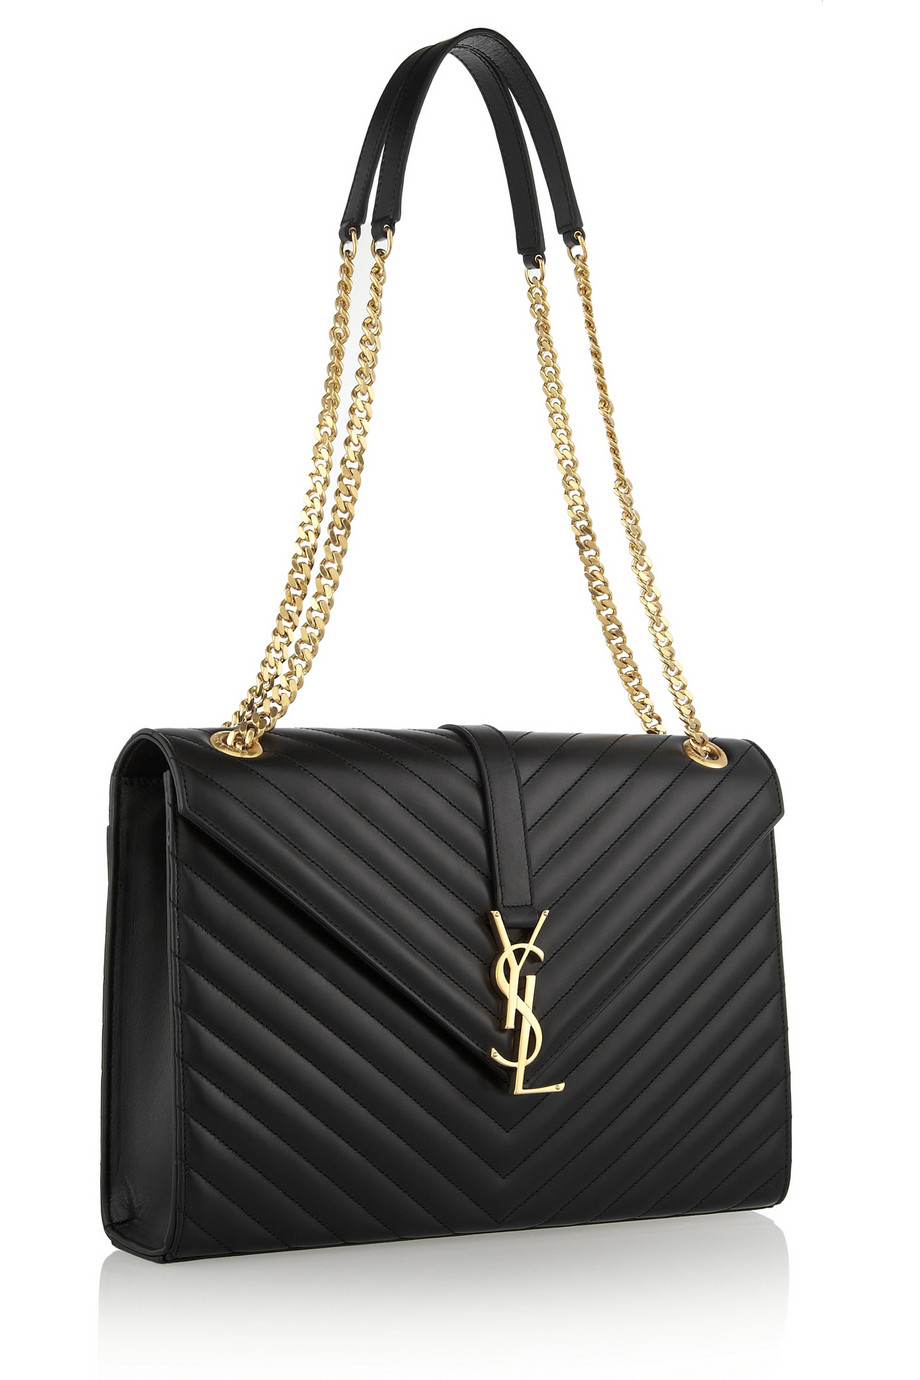 Saint Laurent Women S Monogram Medium Shoulder Bag In